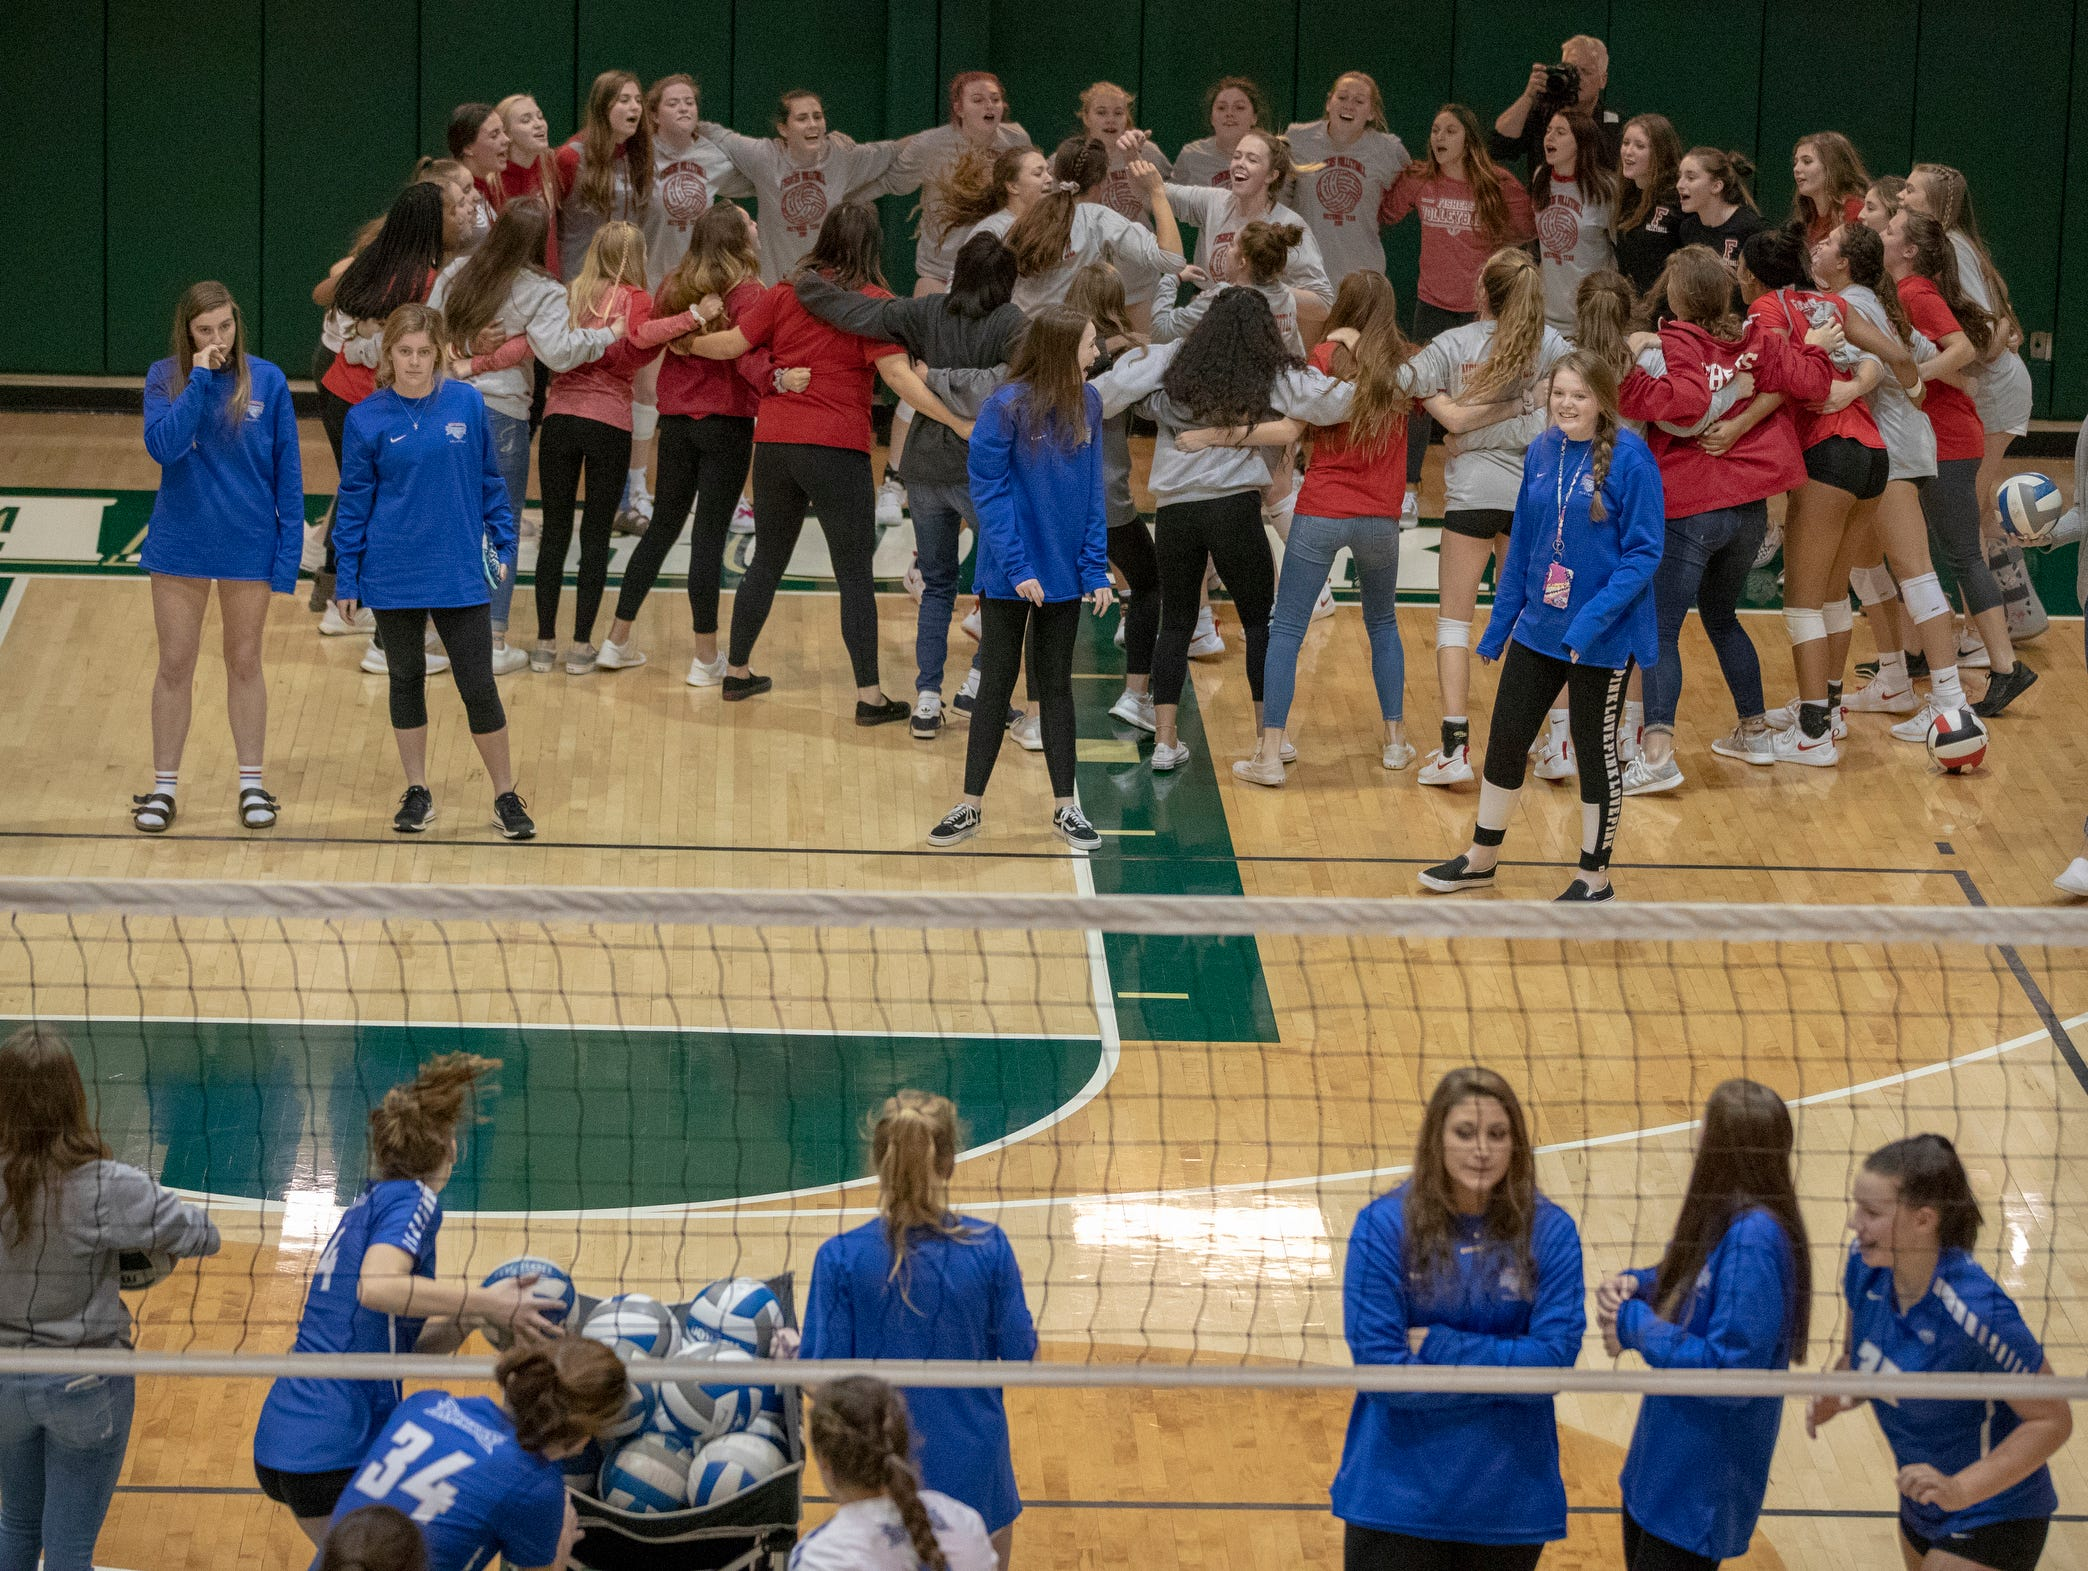 Fishers High School volleyball players cheer pregame, as Hamilton Southeastern High School warms up, before FHS defeated HSE in the first round of the sectional at Westfield High School, Westfield, Thursday, Oct. 11, 2018. The win matches them up with Westfield High School for a game on Saturday morning at 11a.m.